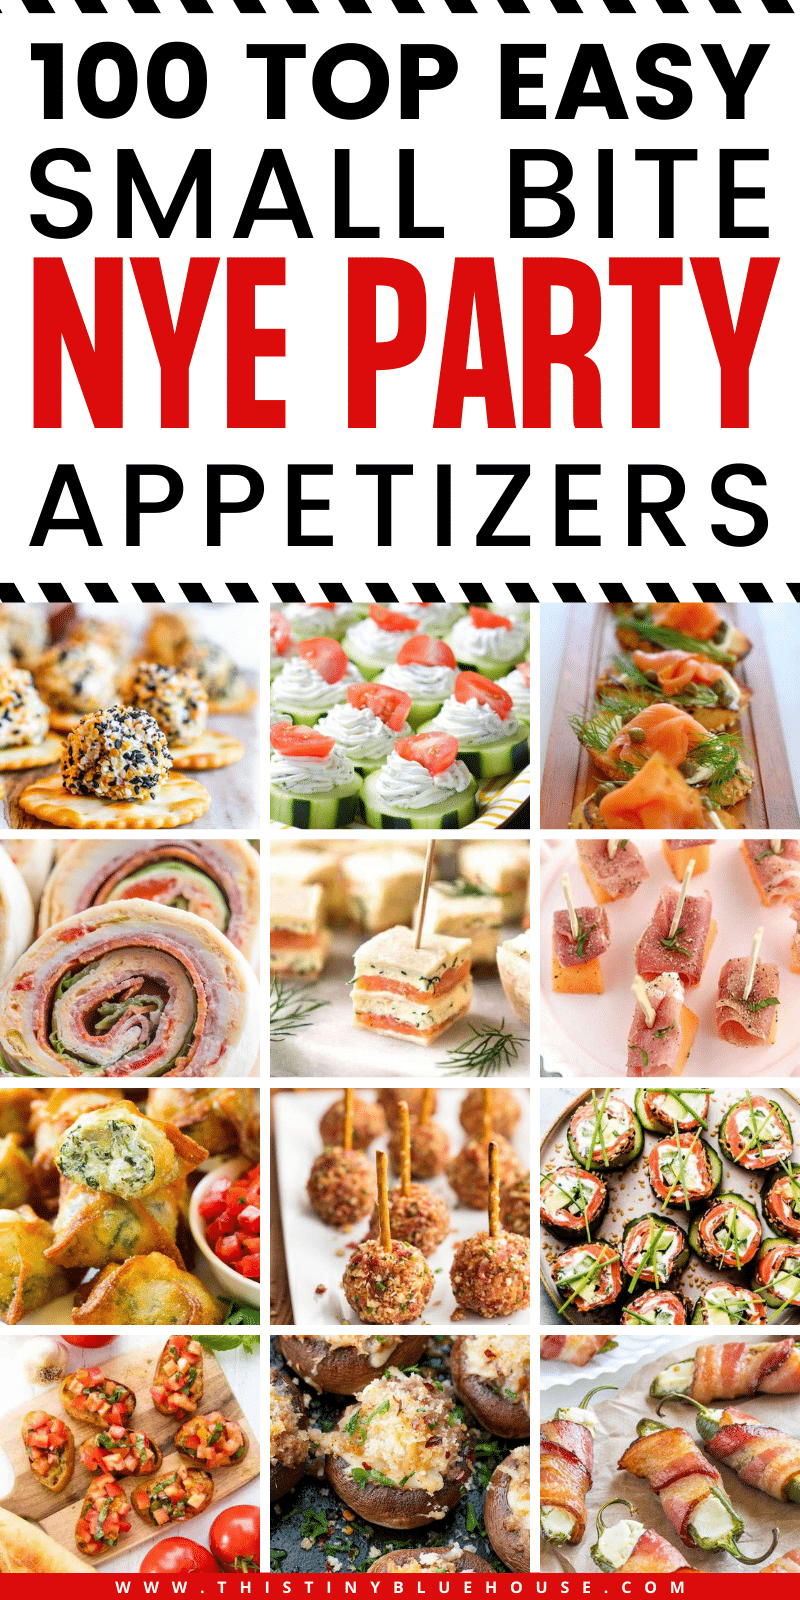 99+ top easy bite sized NYE appetizer Ideas perfect as starters or as a finger food tapas style dinner. #NewYearsEveParty #NewYearsEvePartyFood #NewYearsEvePartyAppetizers #NYEFoodideas #NYEAppetizerIdeas #NYEFingerFoods #SmallBiteAppetizers #FingerFoodRecipes #BestAppetizerIdeas